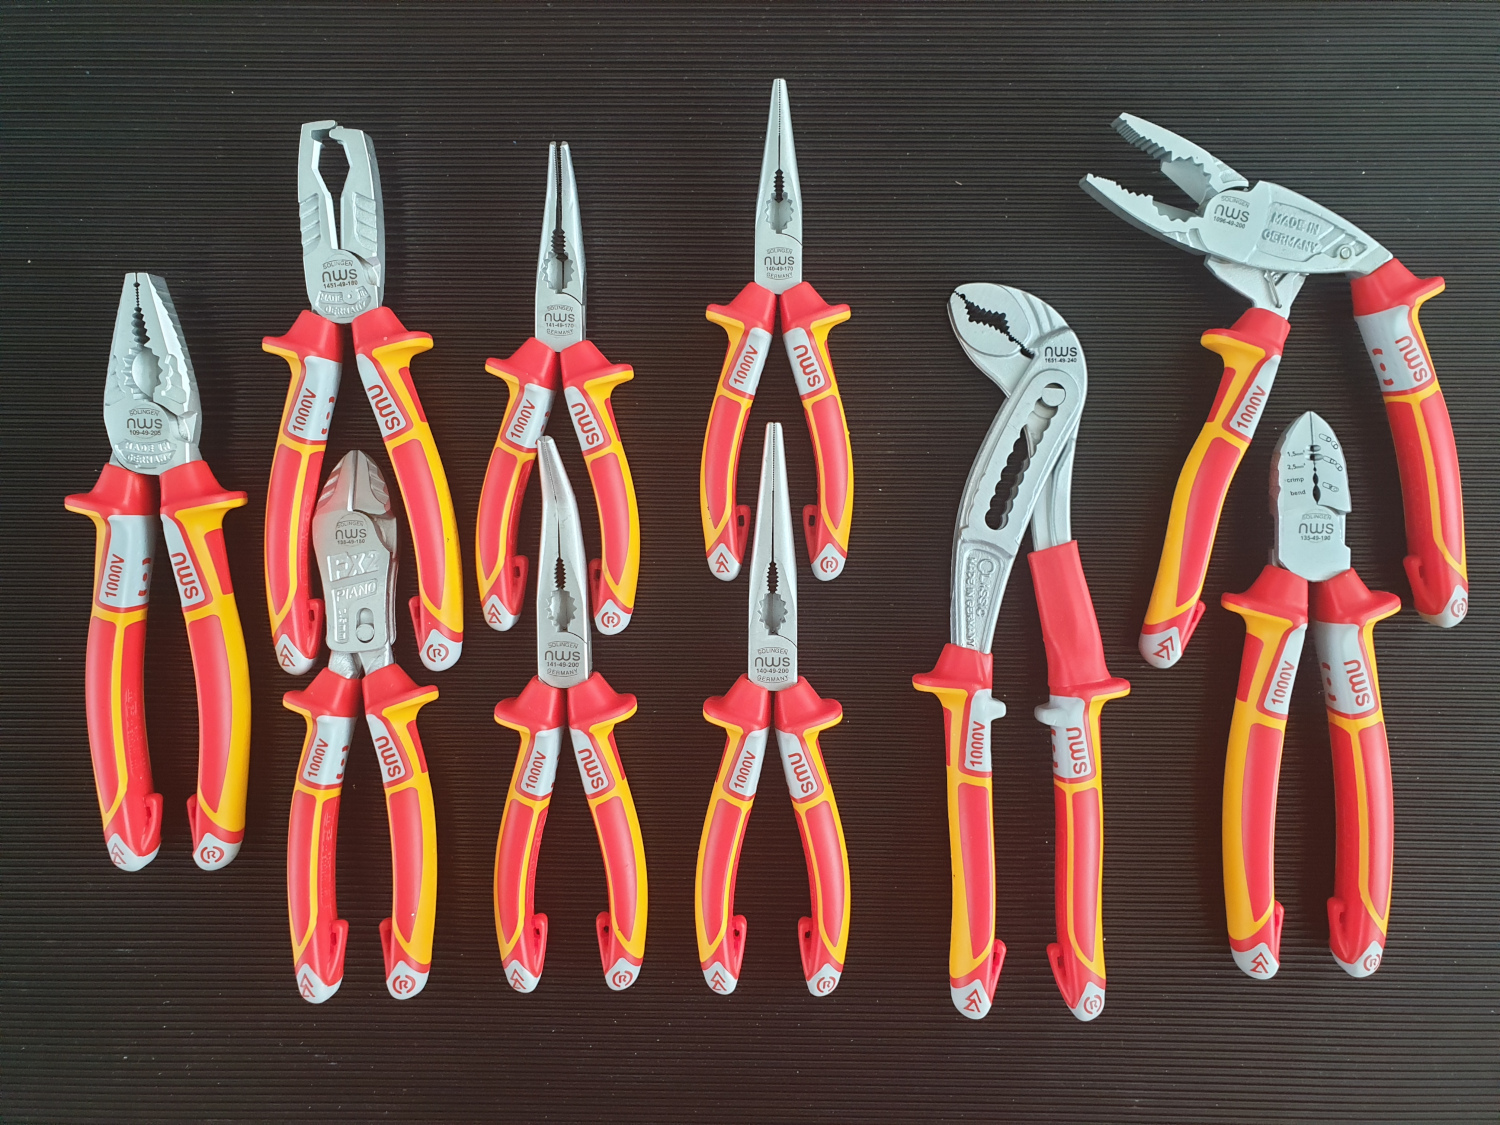 NWS 00-49-VDE-10 Mixed Electrician pliers set, 10pcs